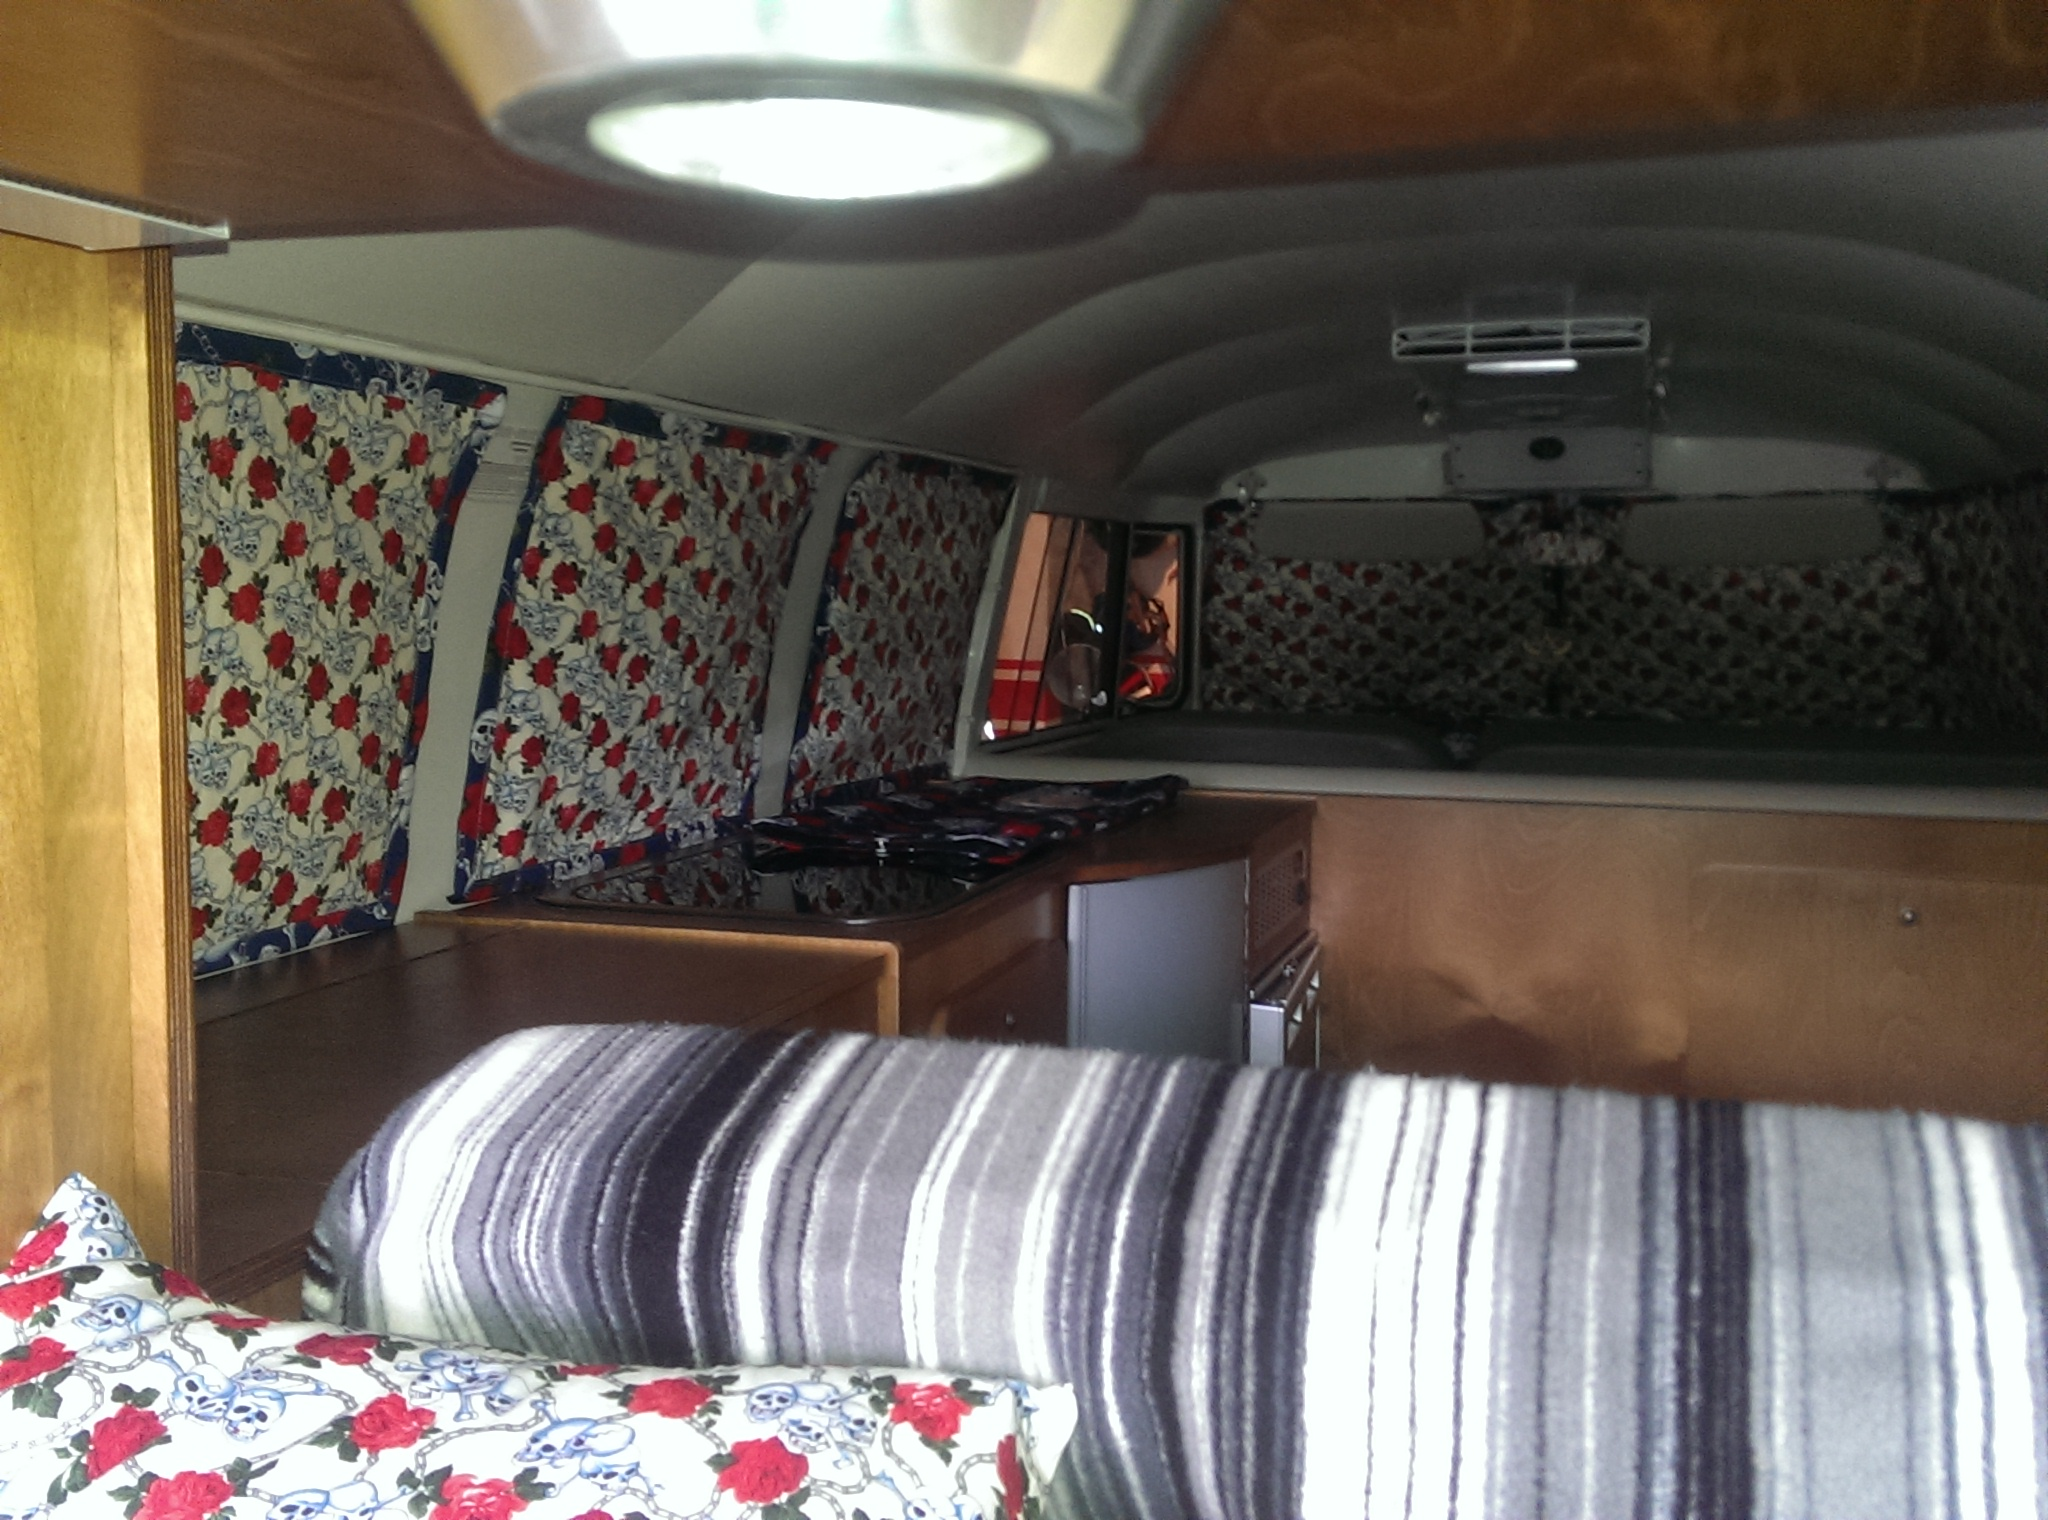 Used Rv Prices >> camper magna blinds | Delilah's VW Camper Furnishings